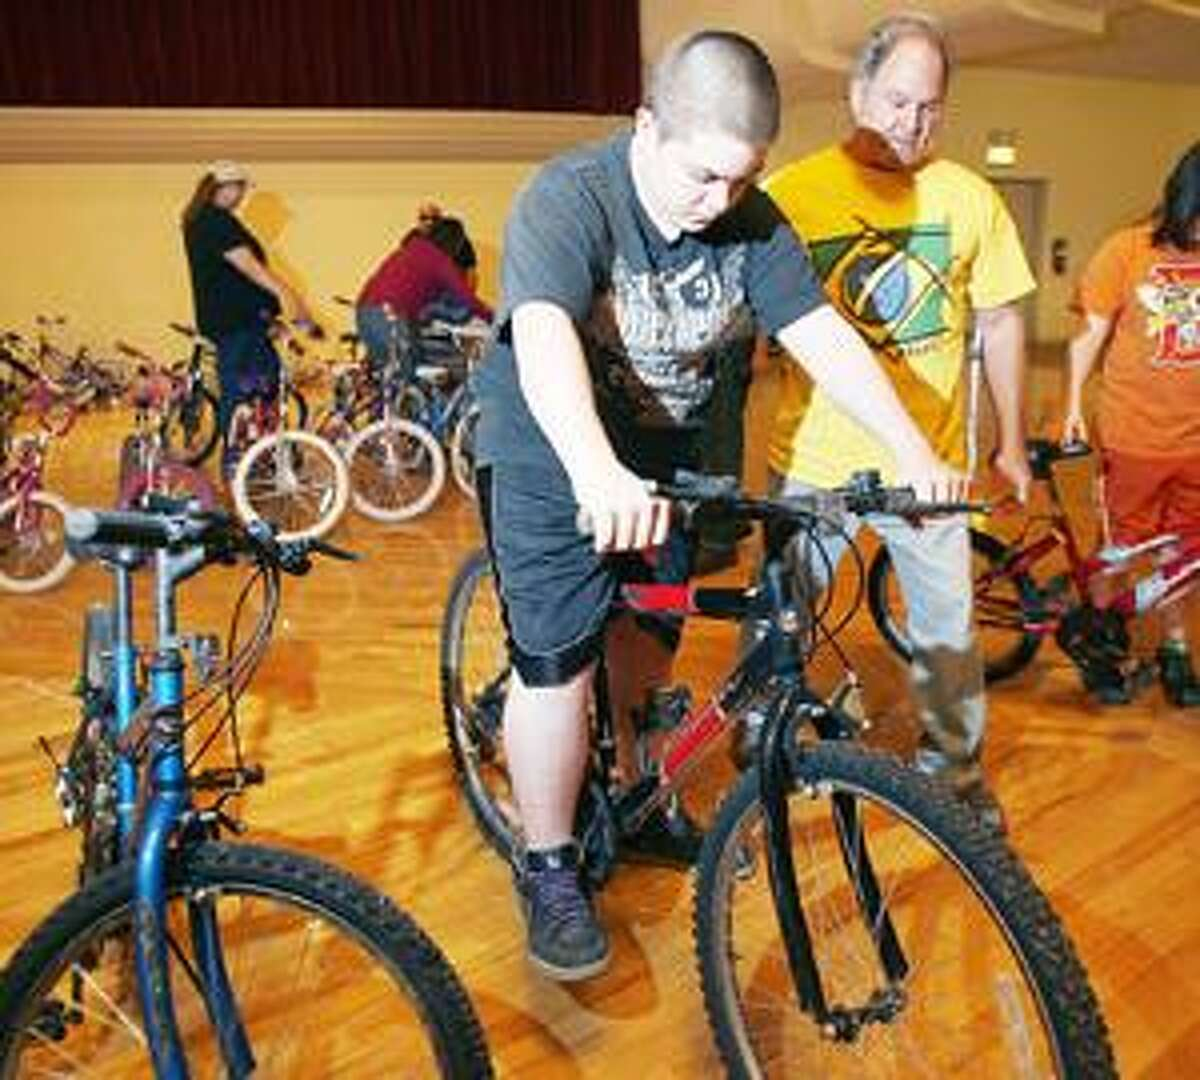 Photo by JOHN HAEGER Robin White of Hamilton helps Kenneth Thurston, 12, of Morrisville, find the right bike during the Community Bike Give Away on Sunday, May 8, 2011 in Oneida.